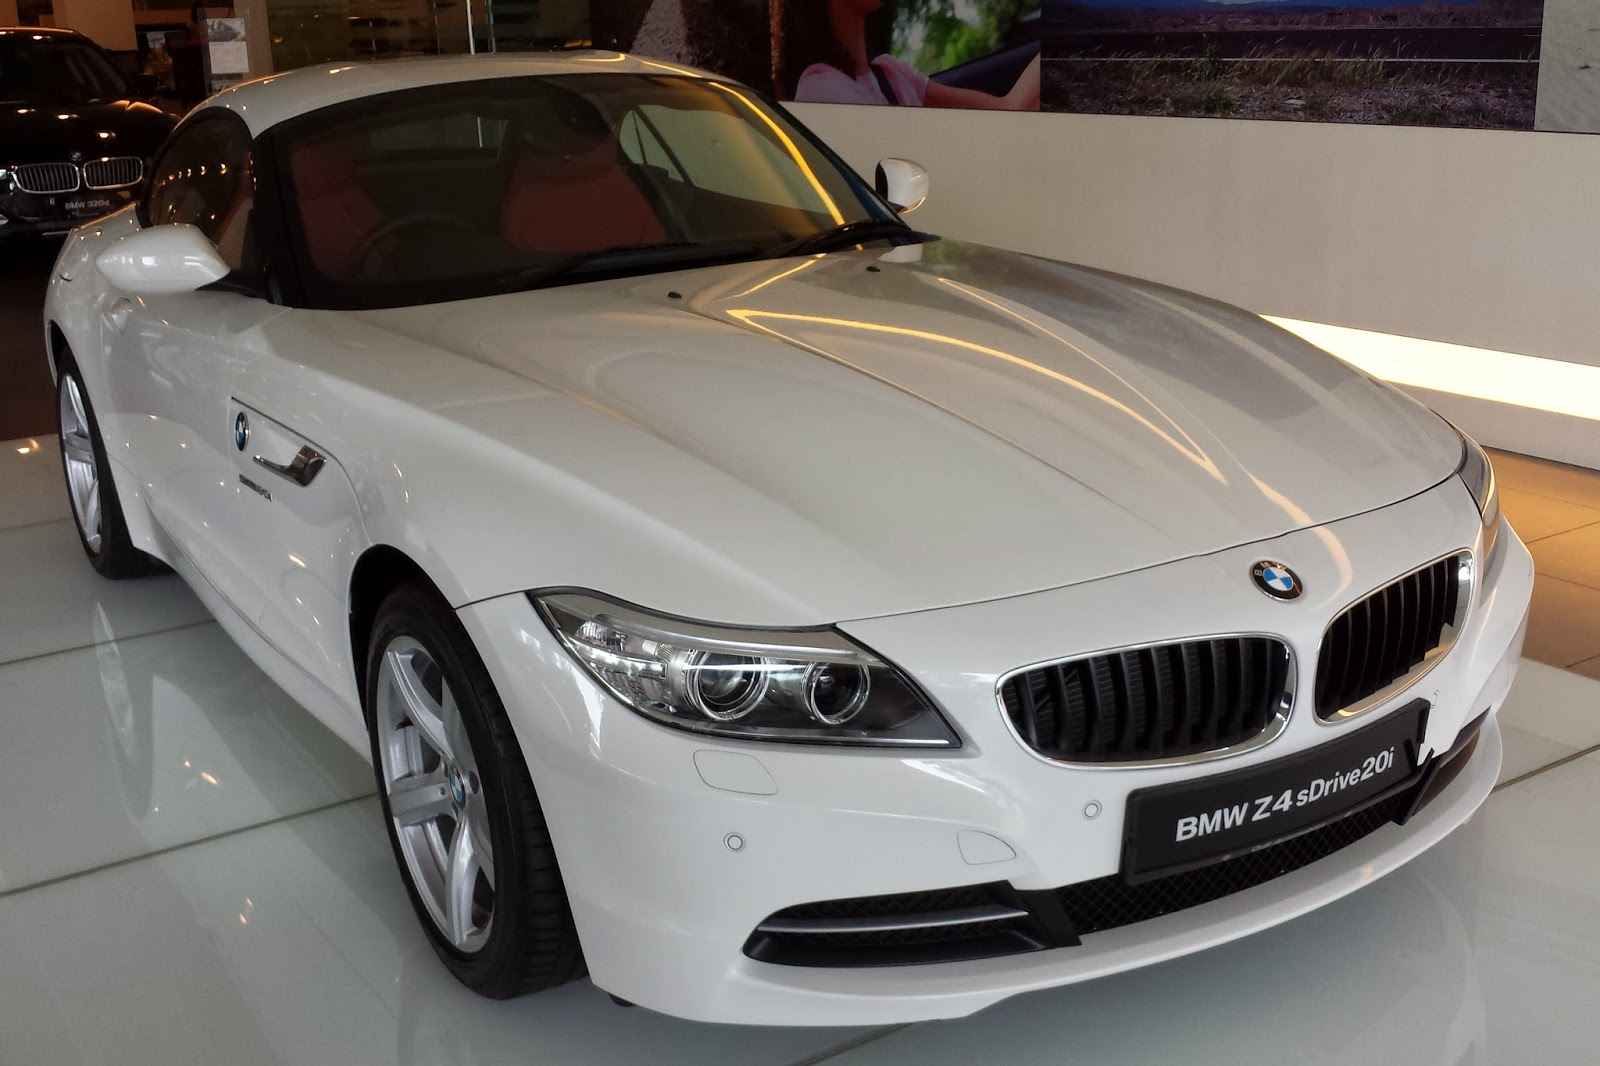 The Layman Auto: The red-leather BMW Z4